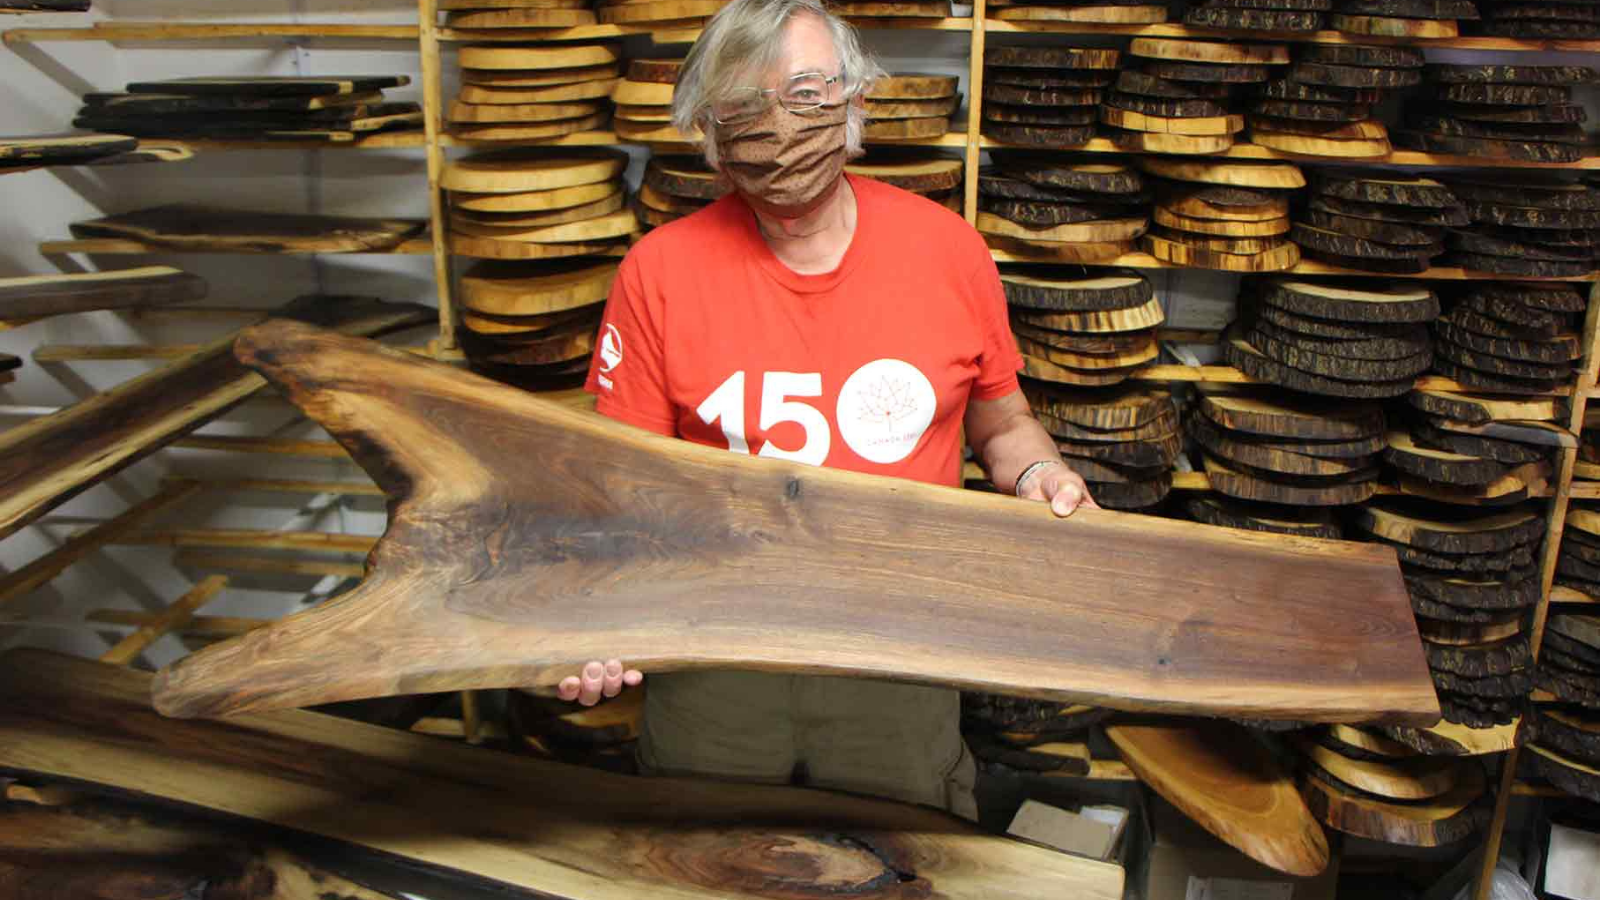 Bill Major in a face mask posing with one of his handcrafted grazing boards.